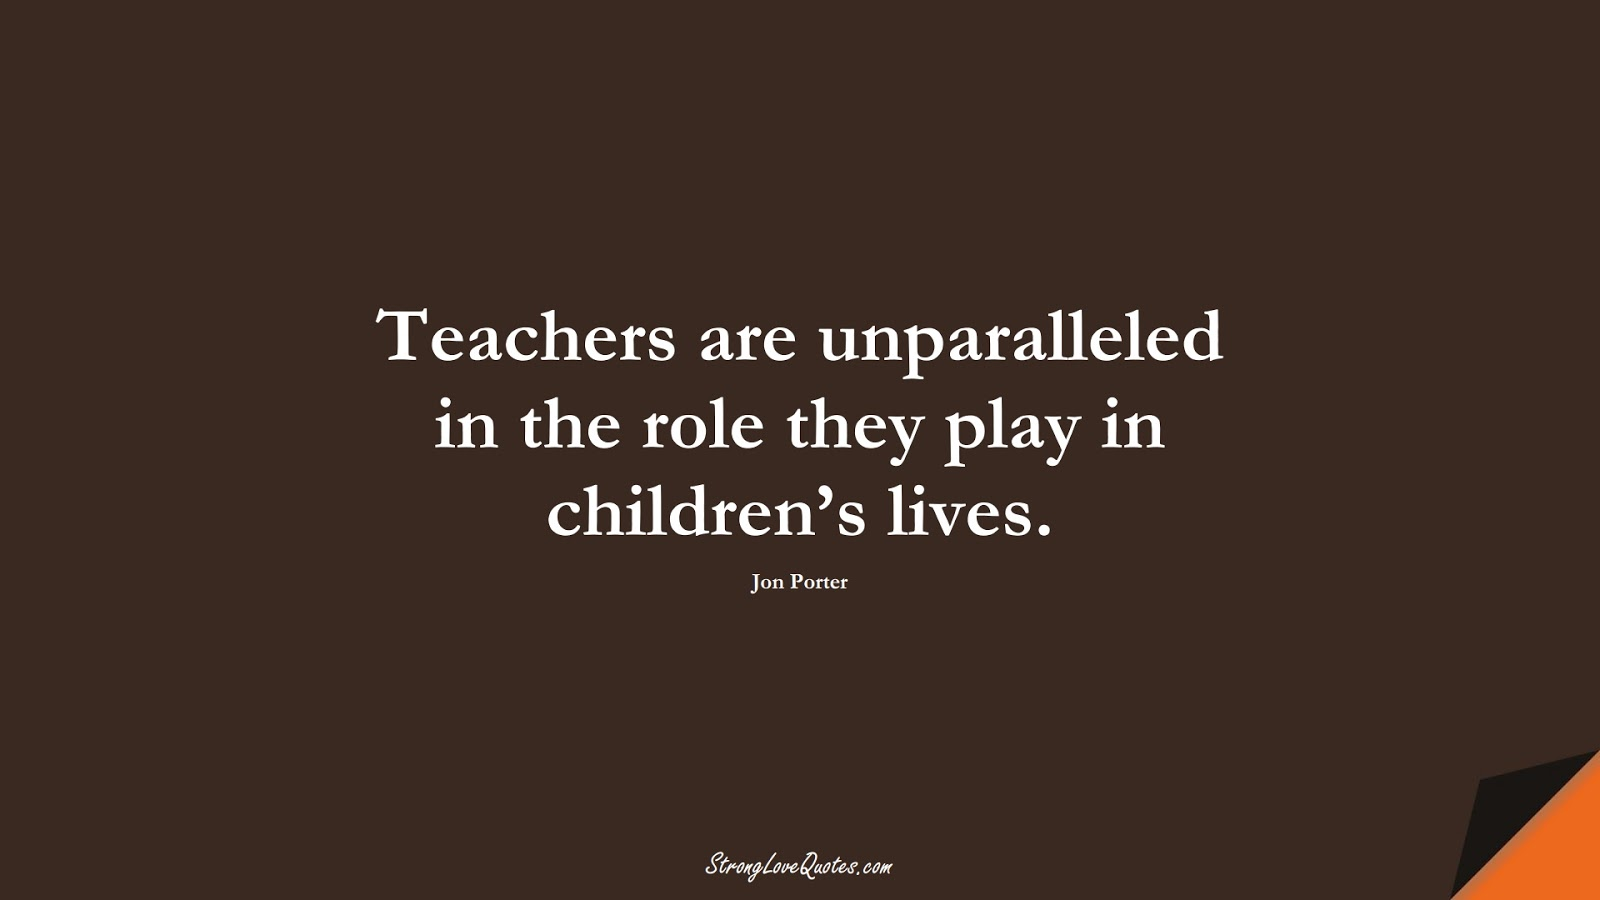 Teachers are unparalleled in the role they play in children's lives. (Jon Porter);  #EducationQuotes